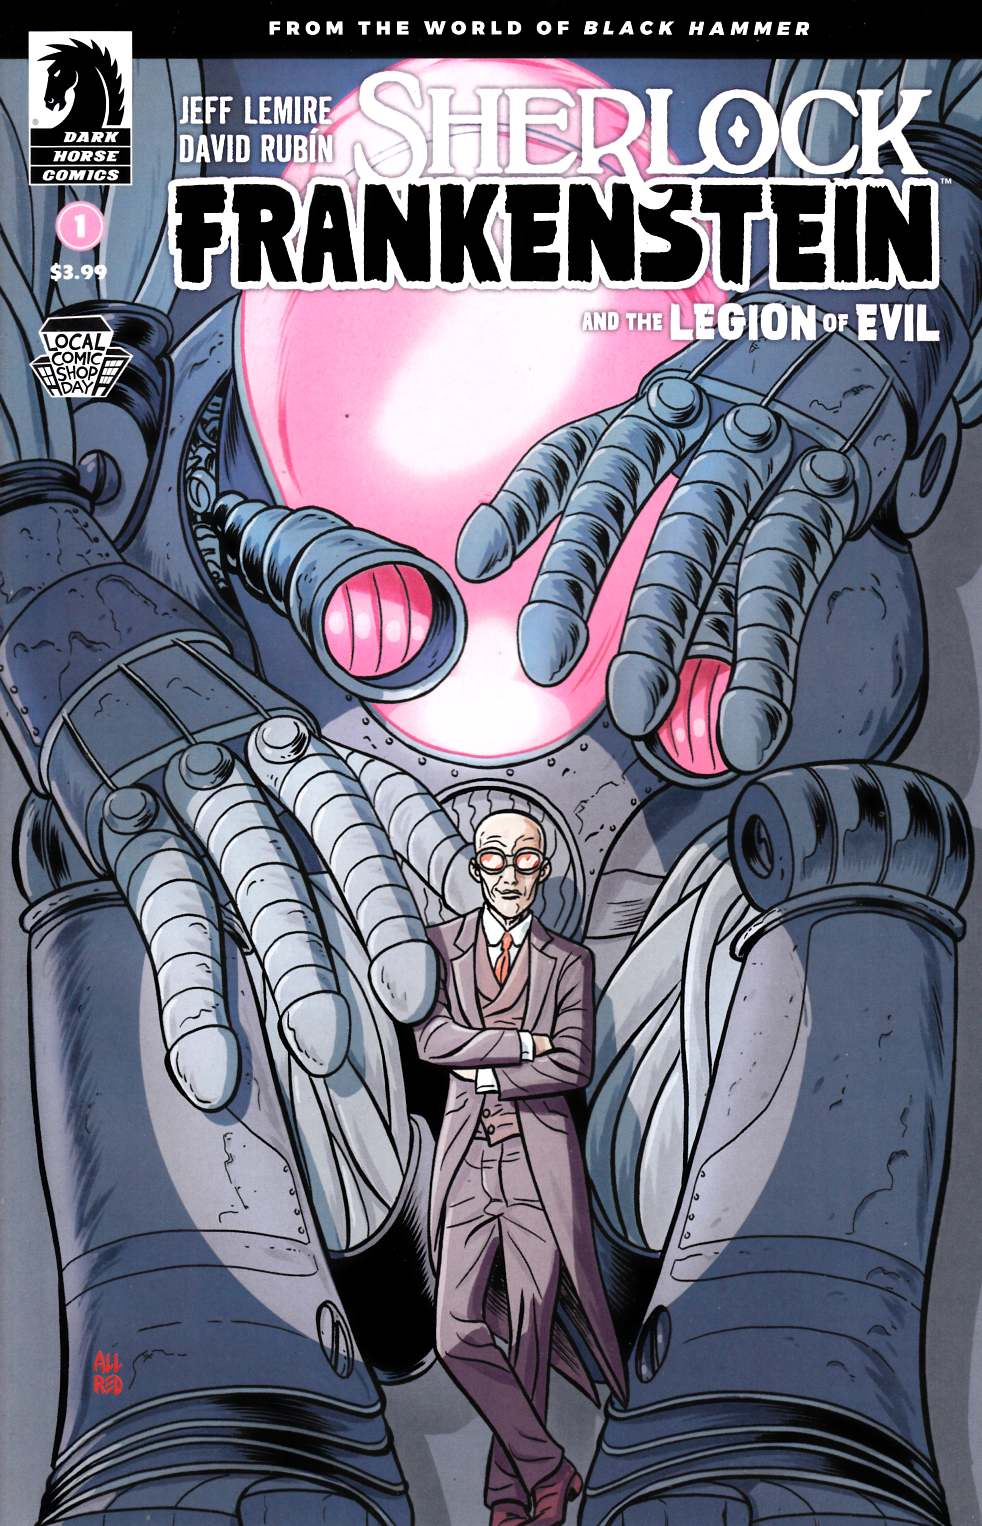 Sherlock Frankenstein & Legion of Evil #1 LCSD 2017 Edition Near Mint (9.4) [Dark Horse Comic] THUMBNAIL